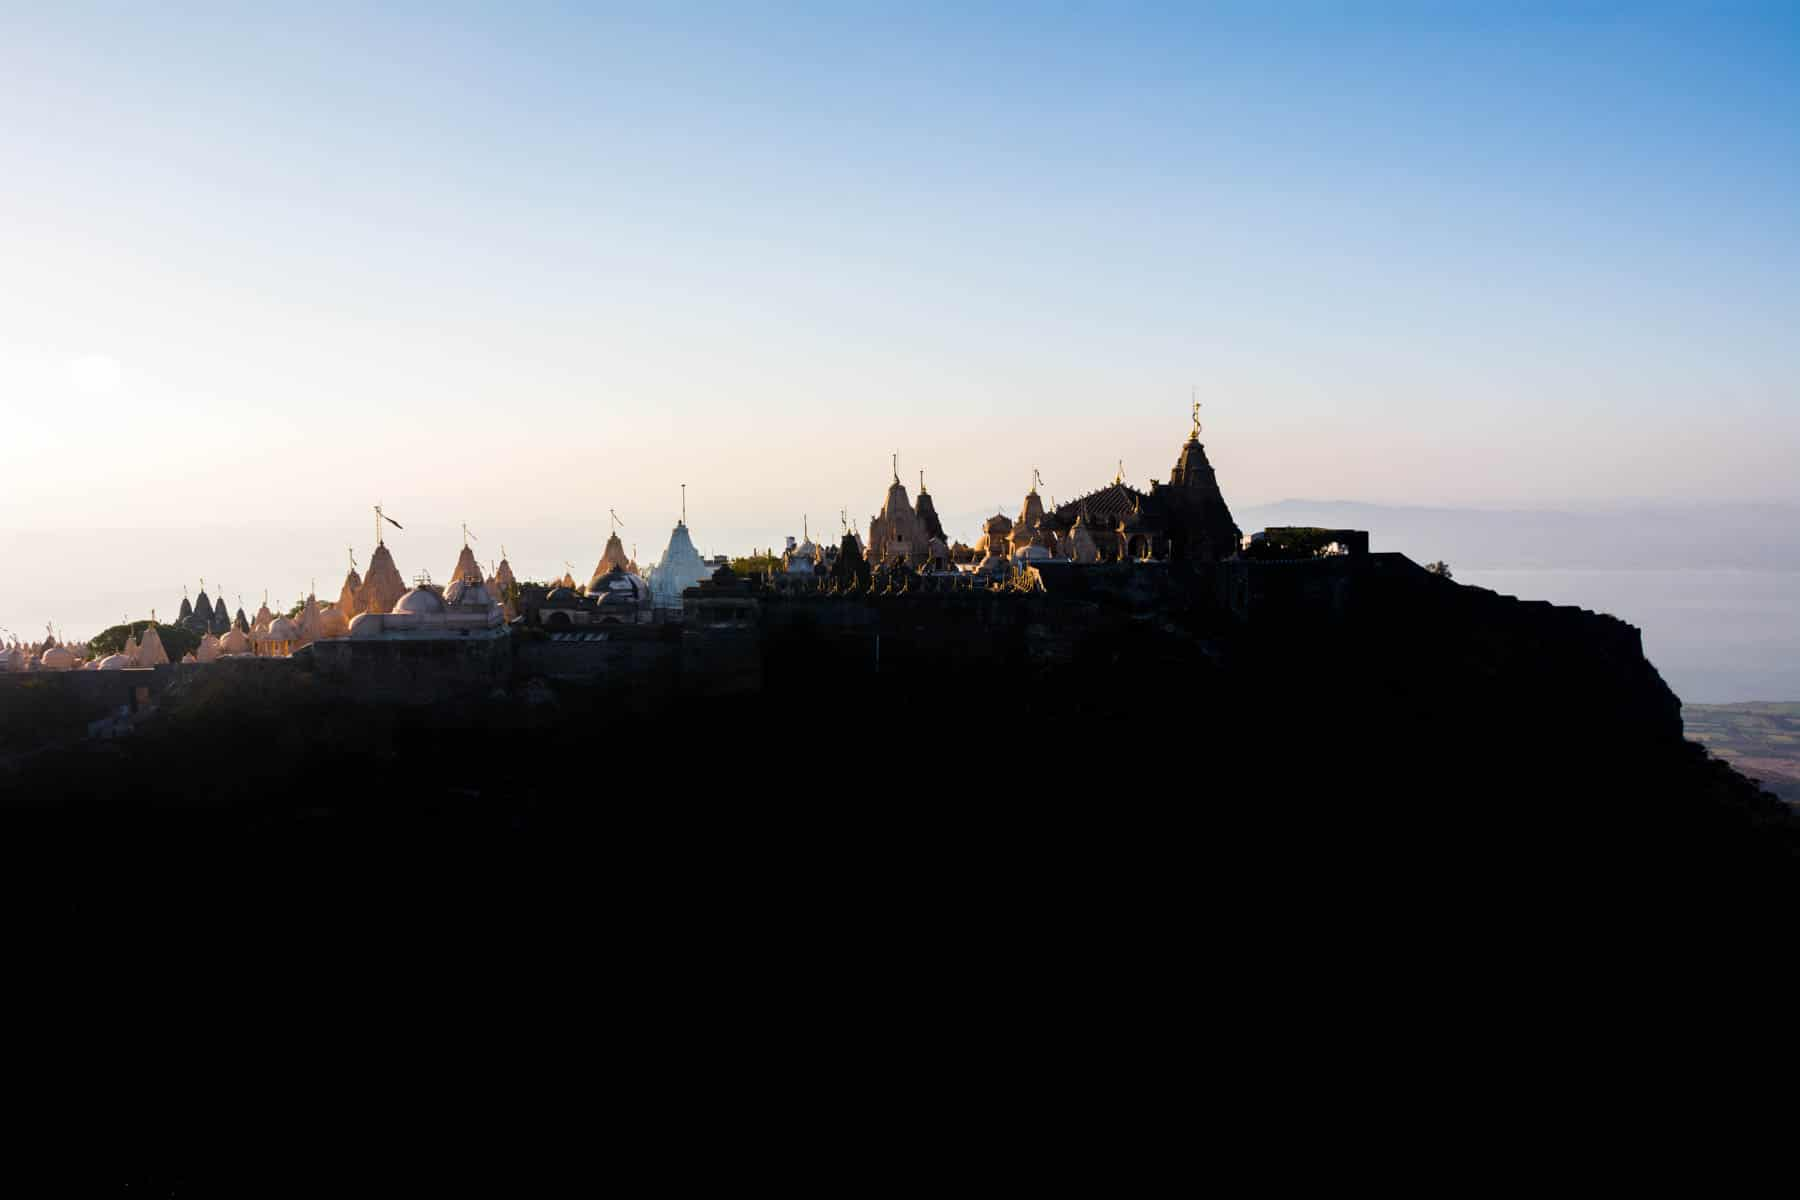 A Jain pilgrimage in Palitana, India - The holy mountain of Girnar with silhouettes of the temples near Palitana - Lost With Purpose